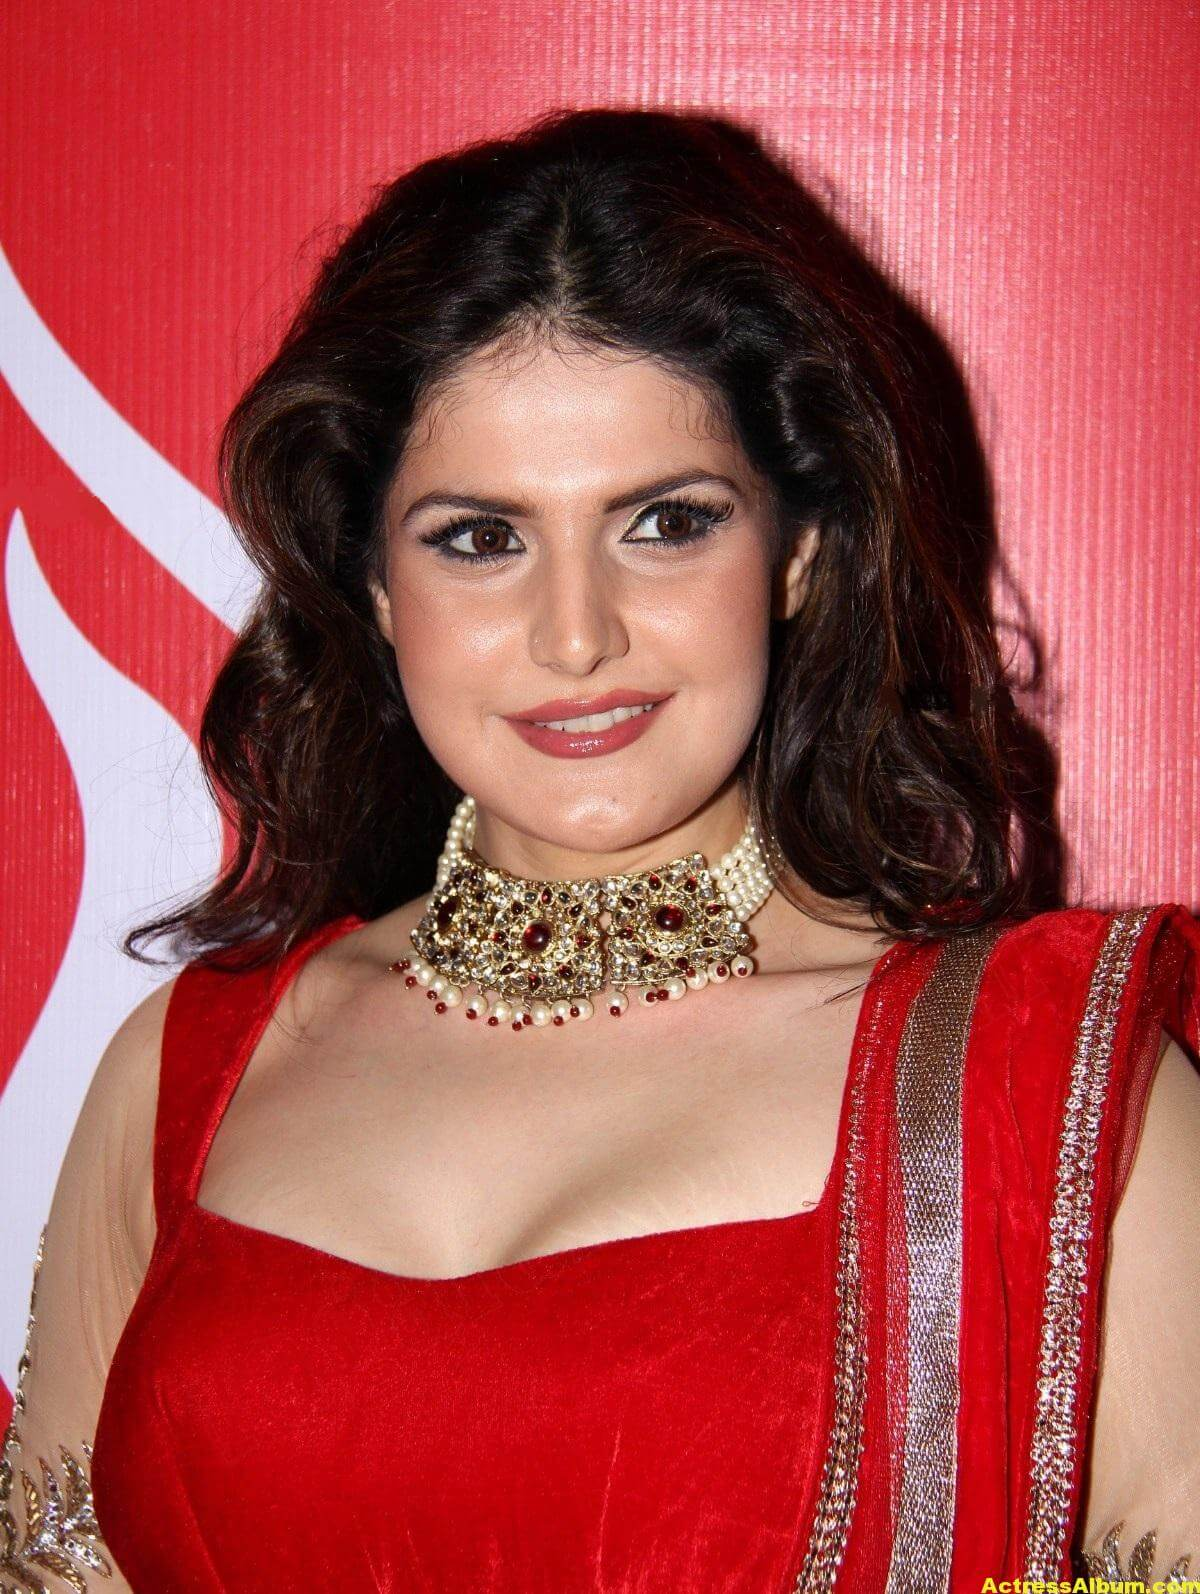 Zarine Khan Hot Photoshoot In Red Dress 4